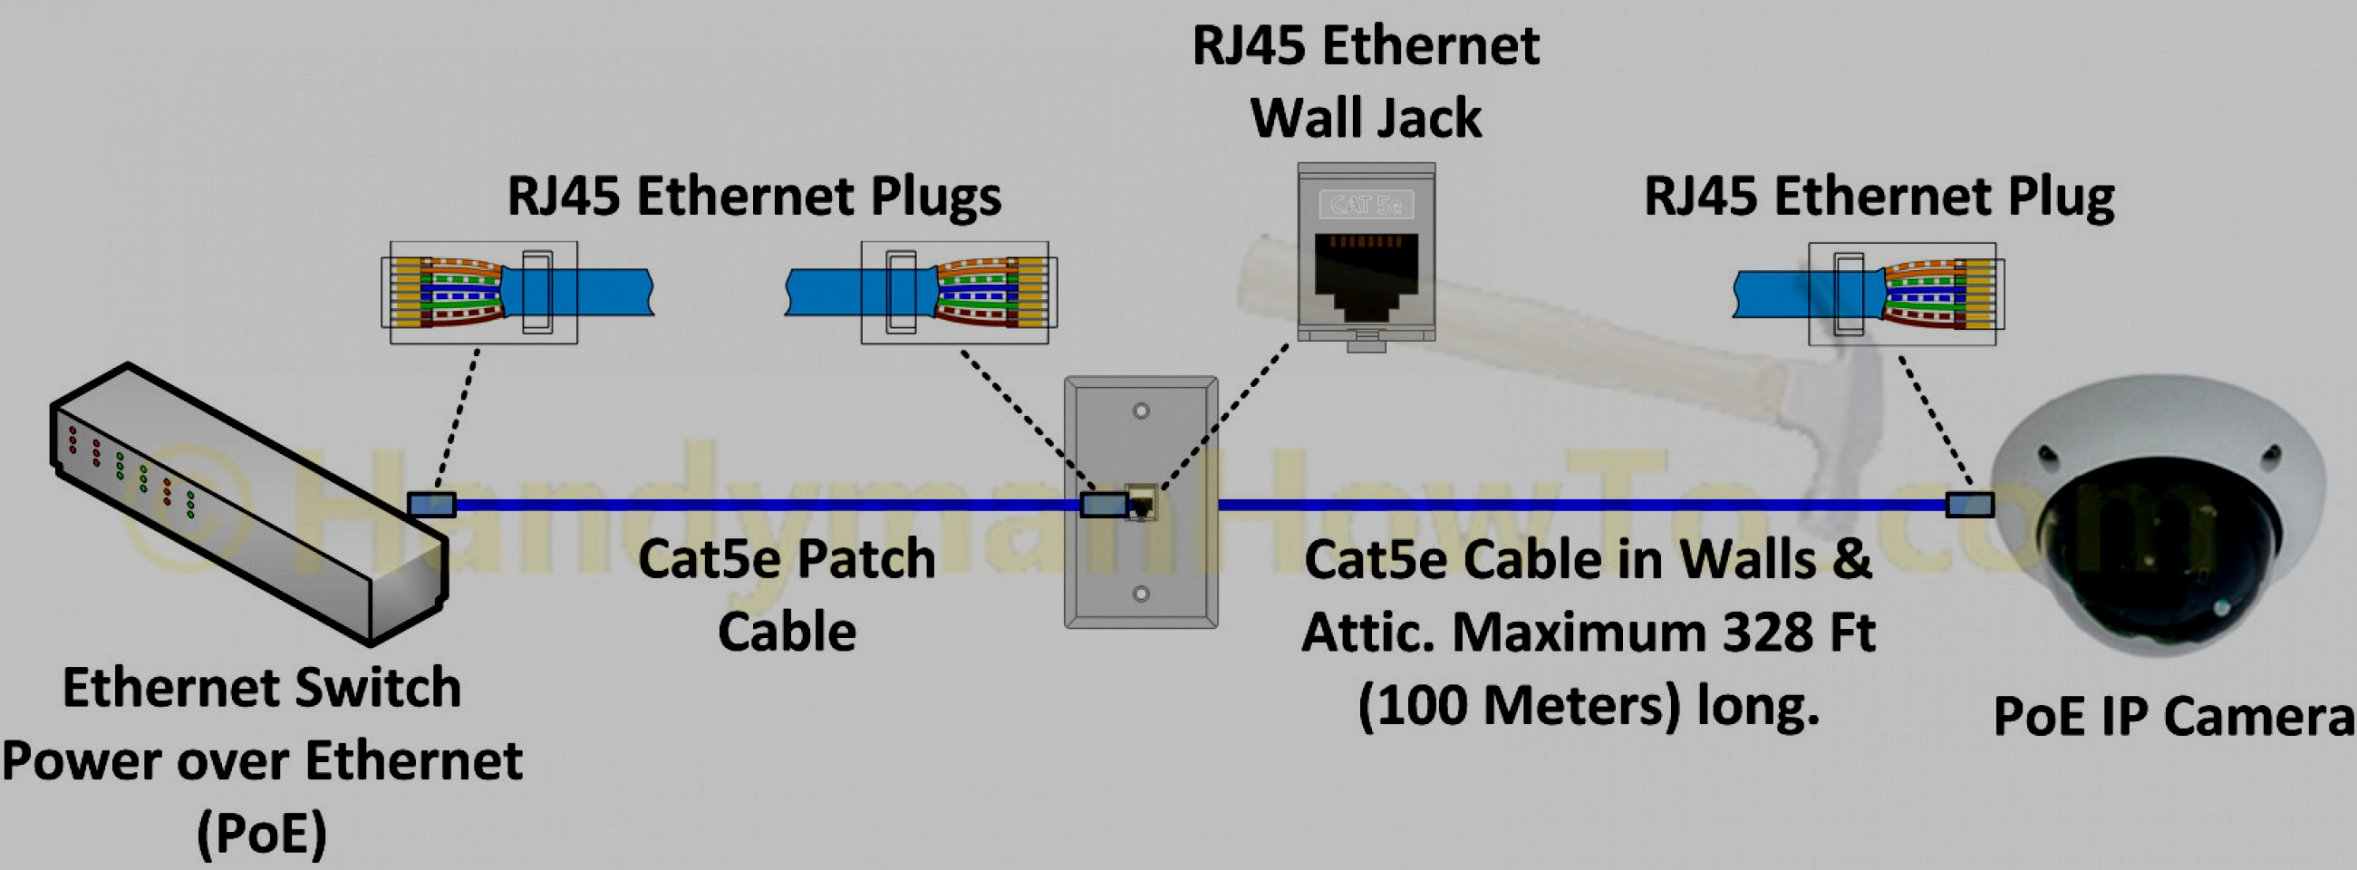 568a Cat 6 Cable Wiring Diagram Free Download | Wiring Diagram Ethernet Wiring Diagram A on b cat 5 cable wiring diagram, 66 block wiring diagram, 304b wiring diagram, cat5 wiring diagram, category 6 cable wiring diagram, cat 6 wiring diagram, phone jack wiring diagram, ethernet wiring diagram, 356a wiring diagram, t568b wiring diagram, cat 5 wall jack wiring diagram, rj45 cat 5 wiring diagram, 258a wiring diagram, rj45 wall jack wiring diagram,